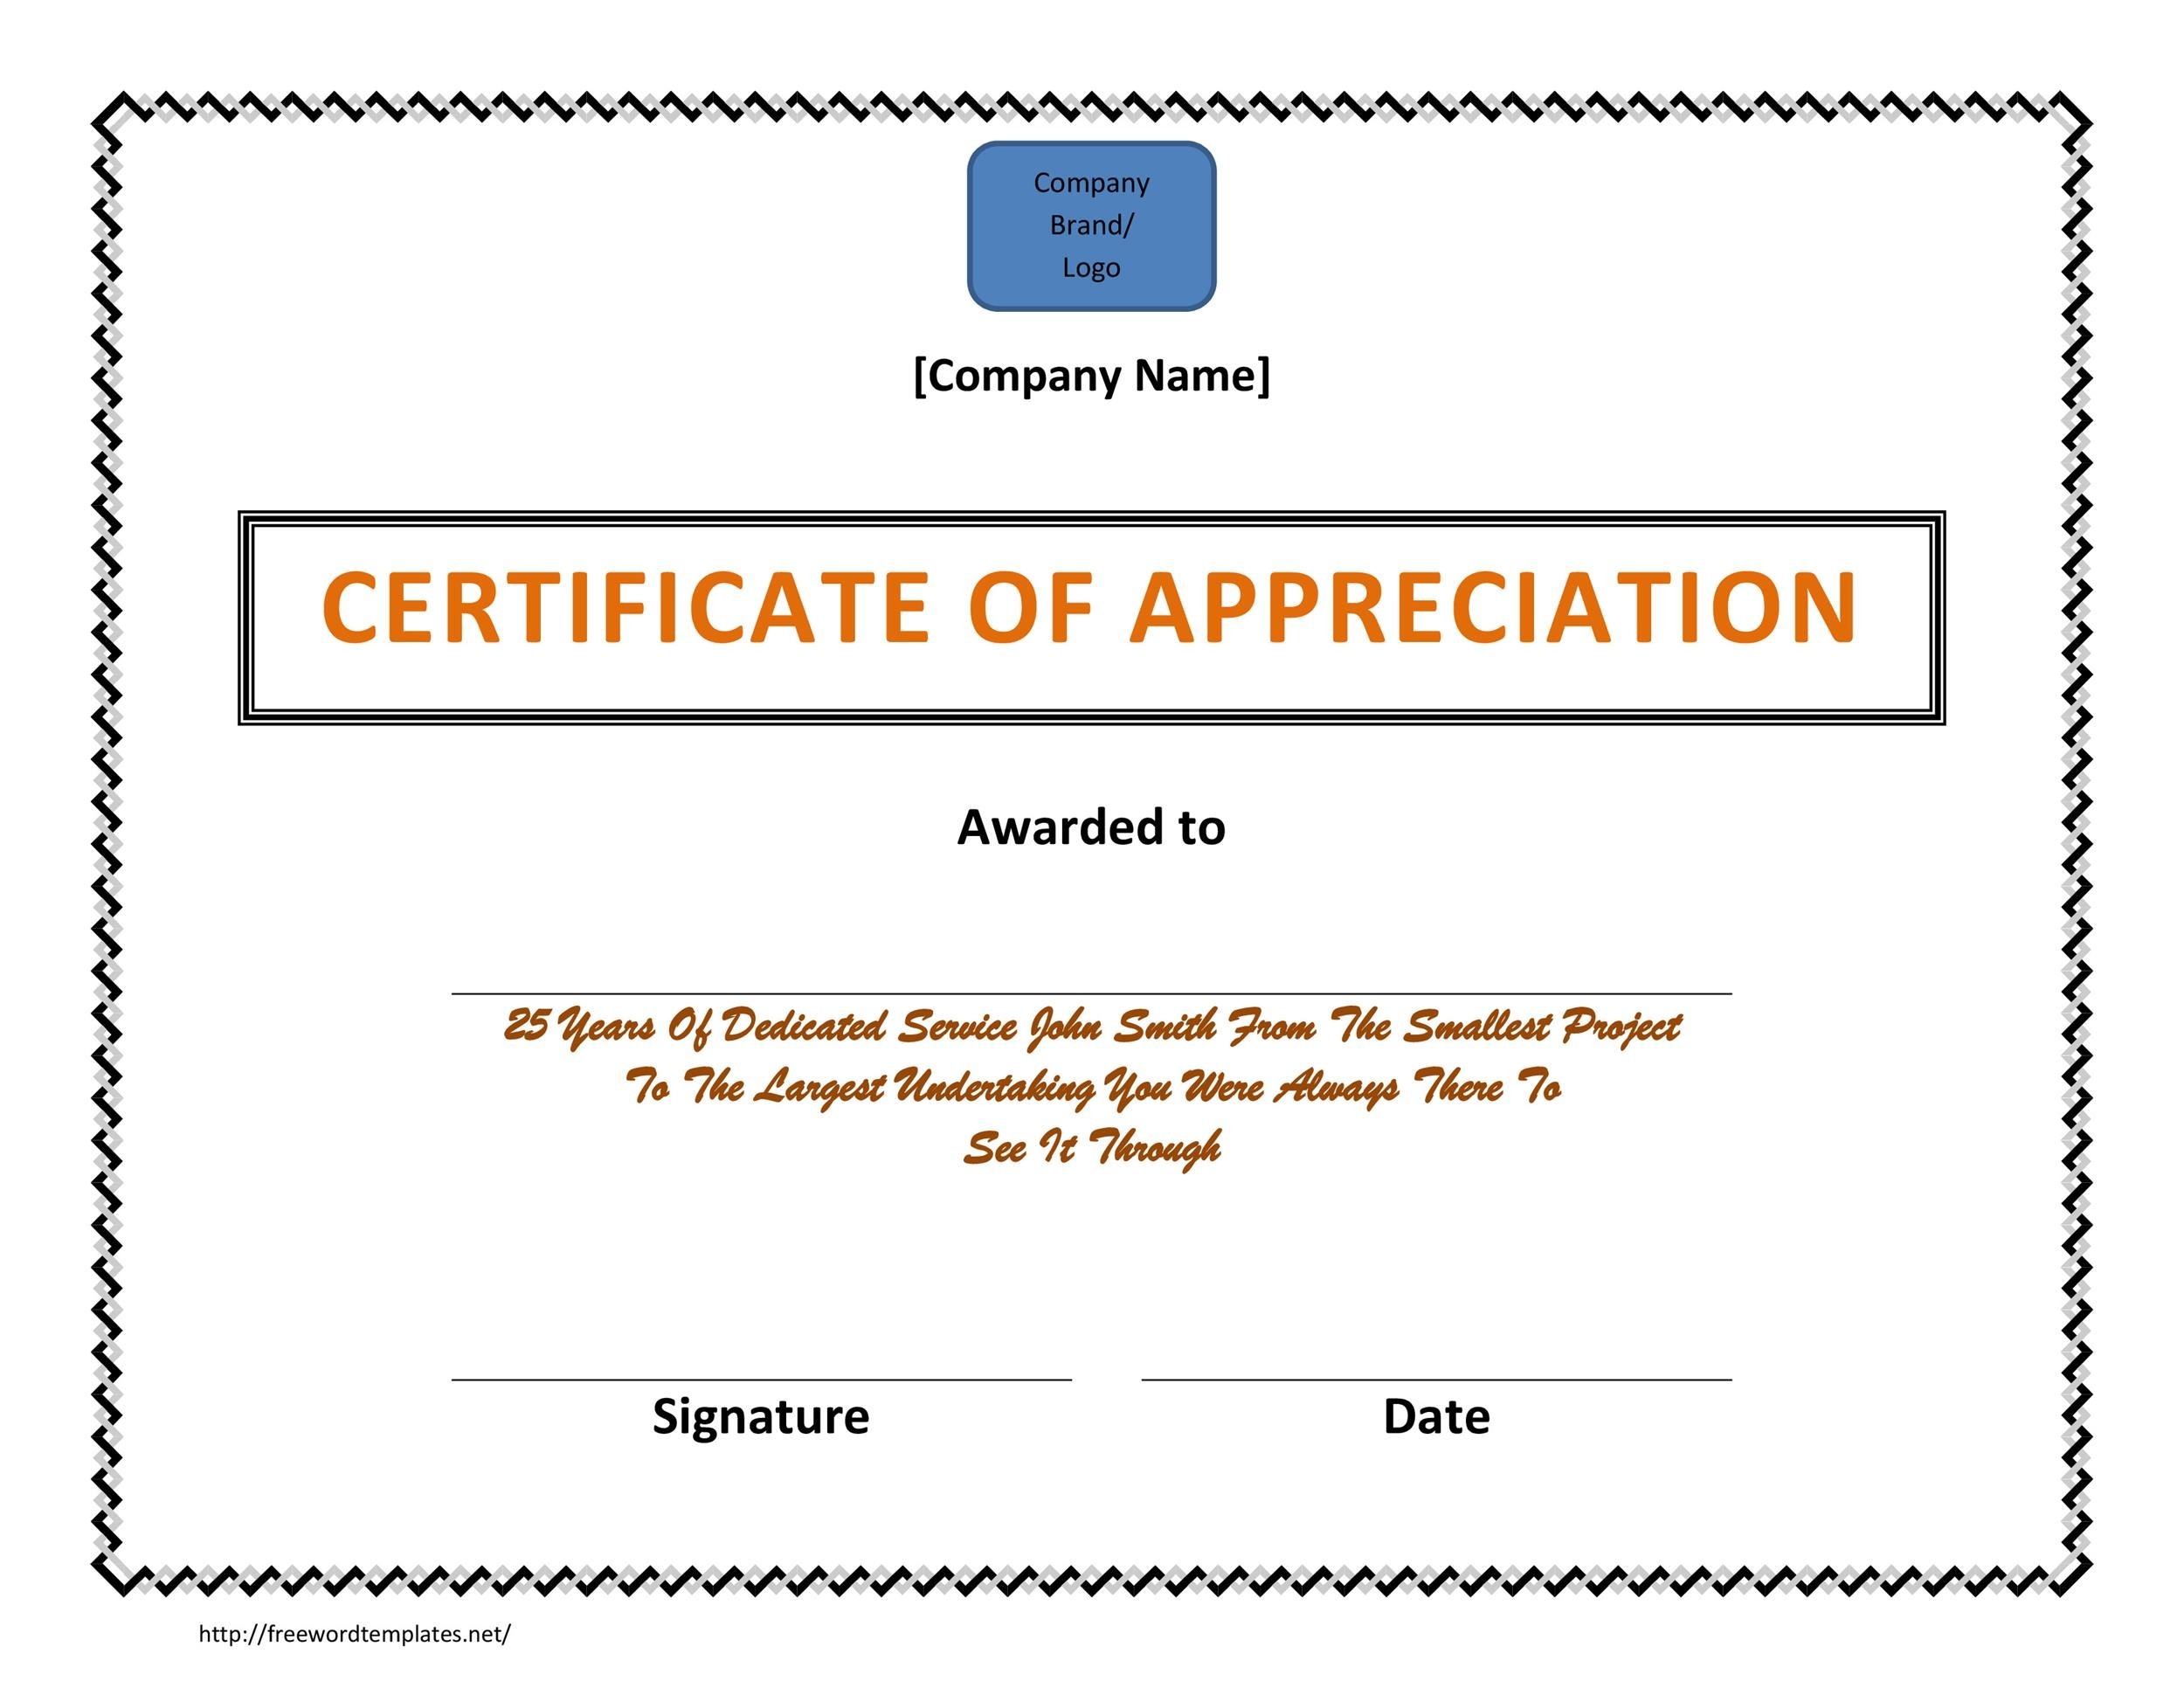 Free certificate of appreciation templates and letters printable certificate of appreciation 05 thecheapjerseys Images